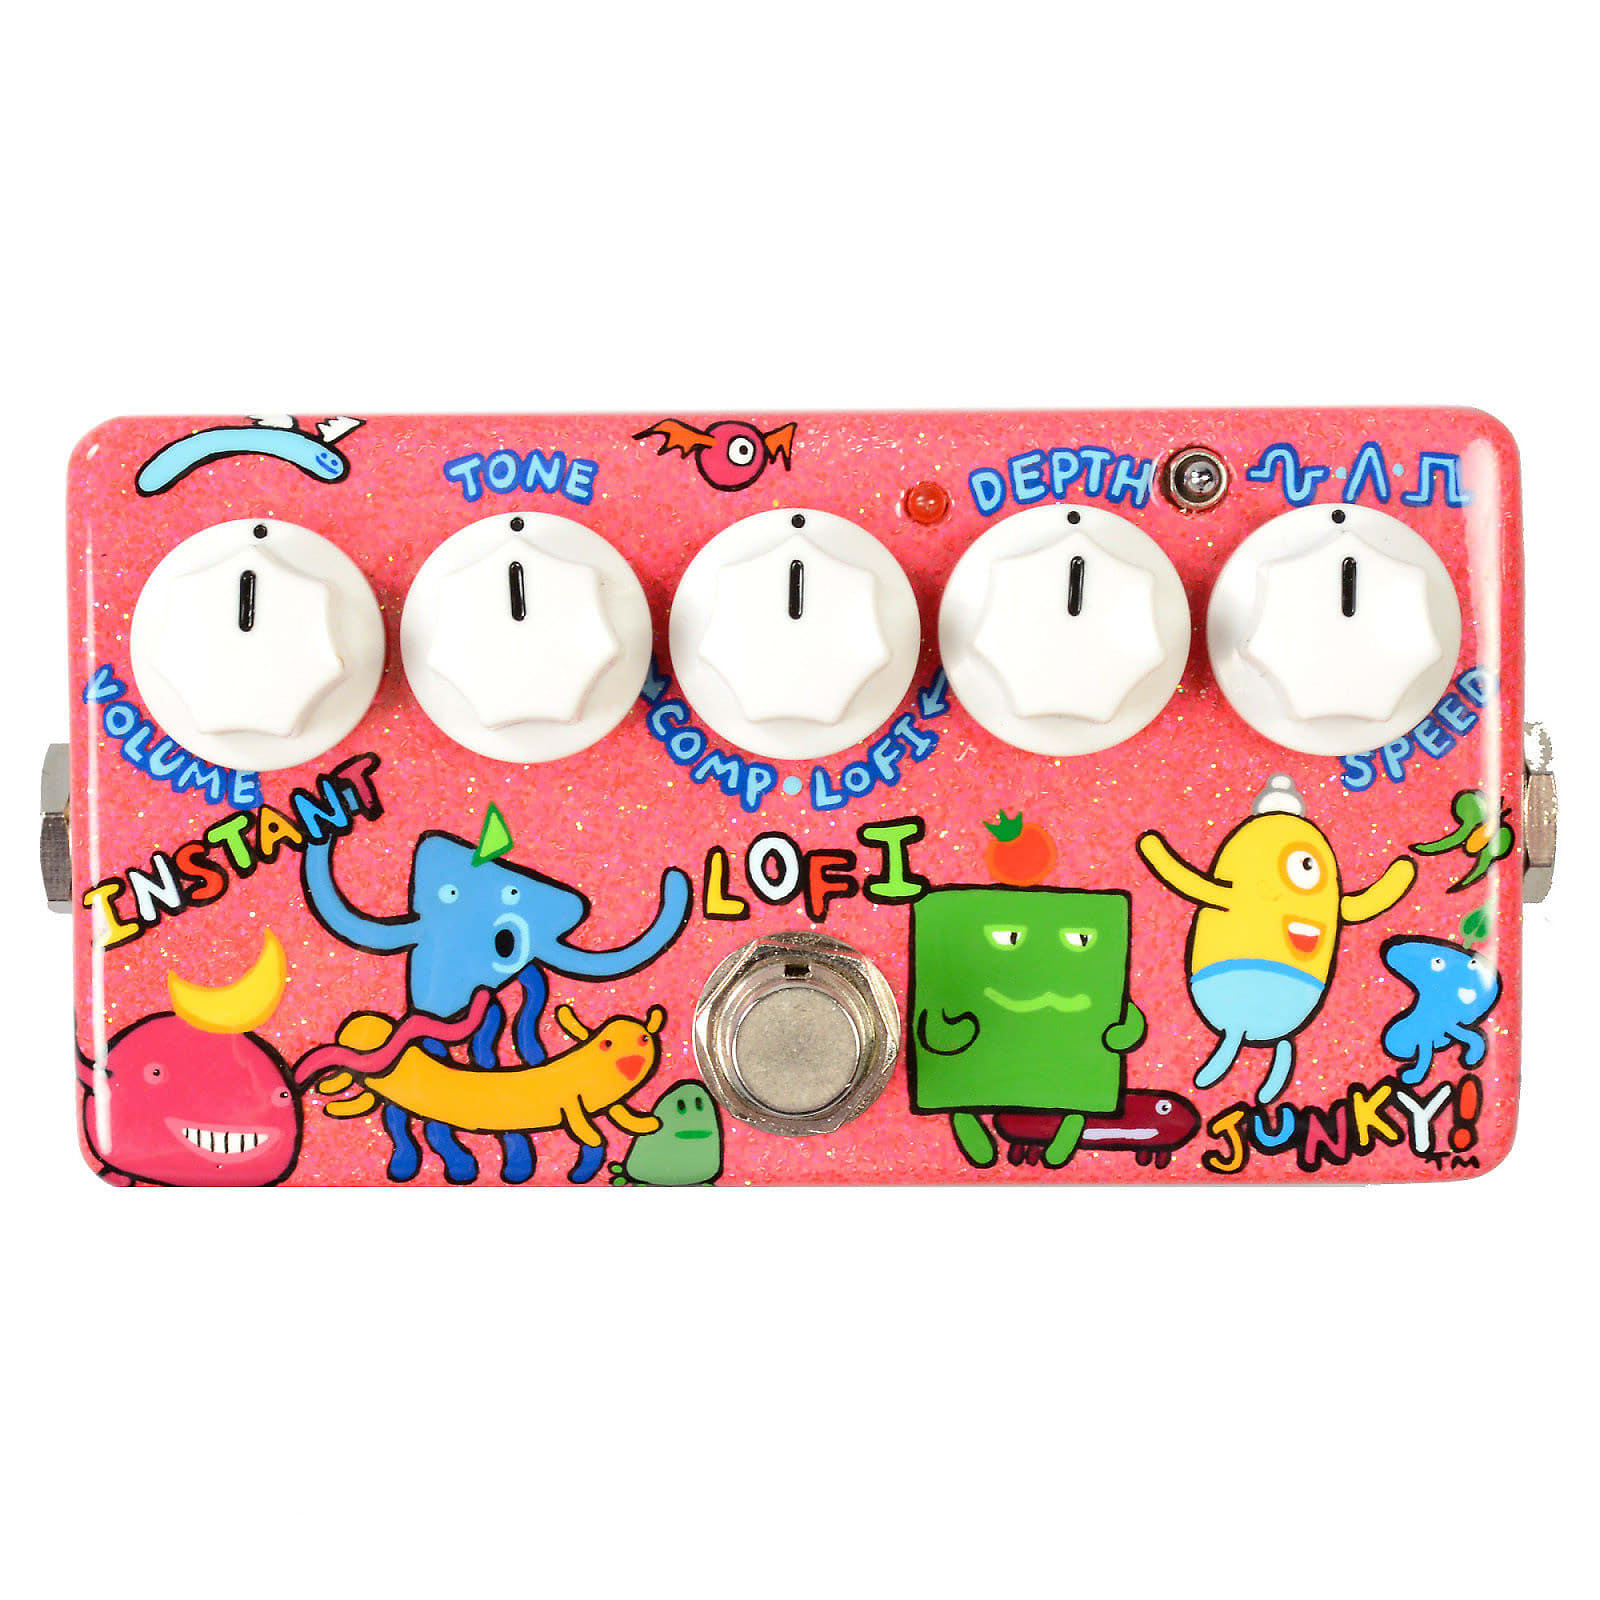 Zvex Effects Vertical Instant Lo-Fi Junky FREE 2 DAY SHIP